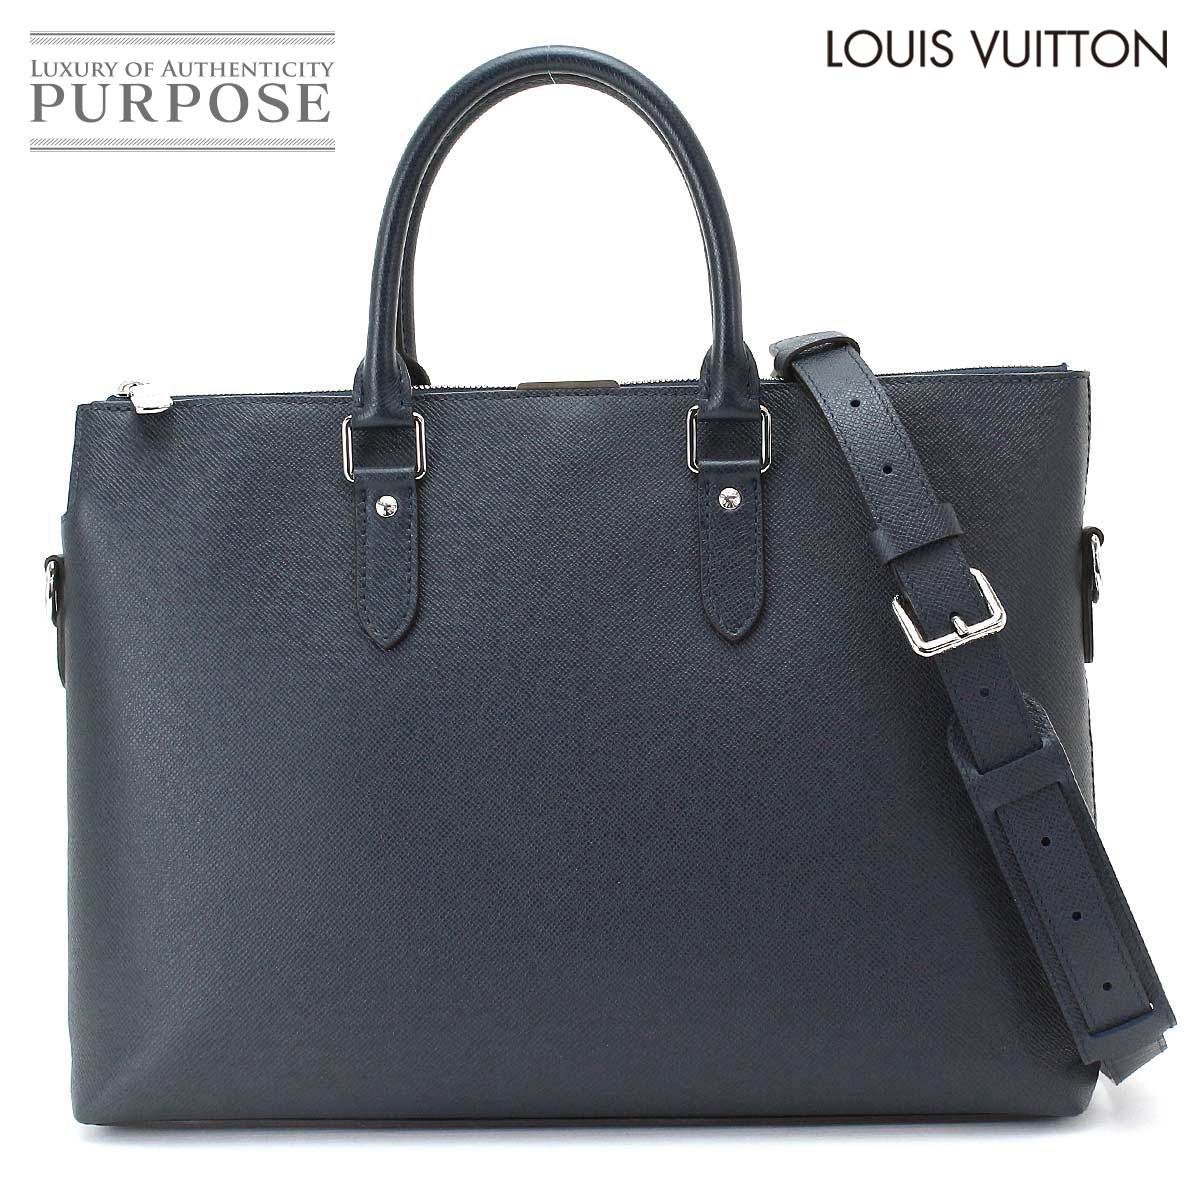 8d08a8f6c8 Louis Vuitton LOUIS VUITTON taiga Anton briefcase business bag leather blue  malines M33417